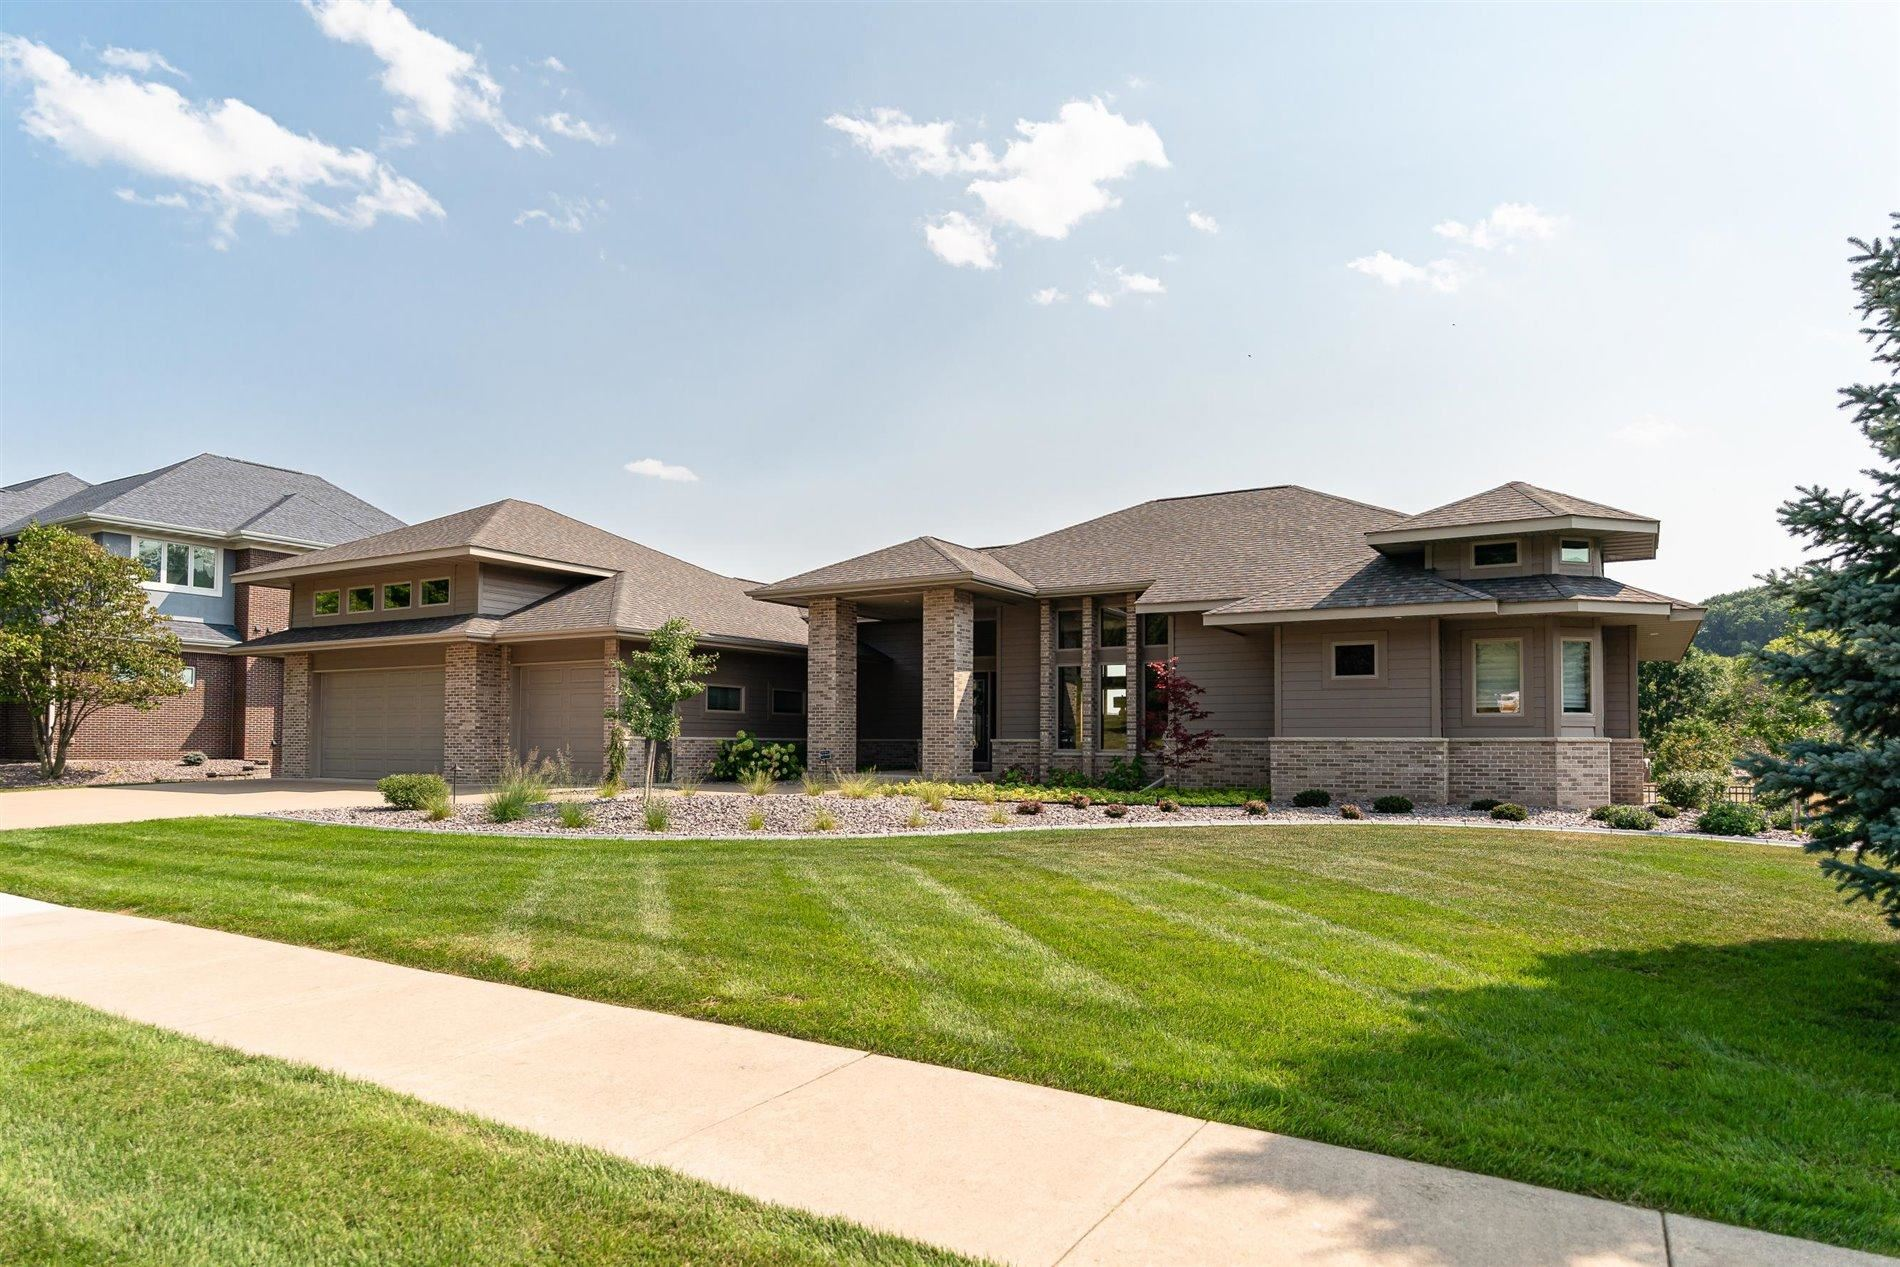 3206 Emerald Valley Dr, Onalaska, WI 54650 - MLS#: 1725431